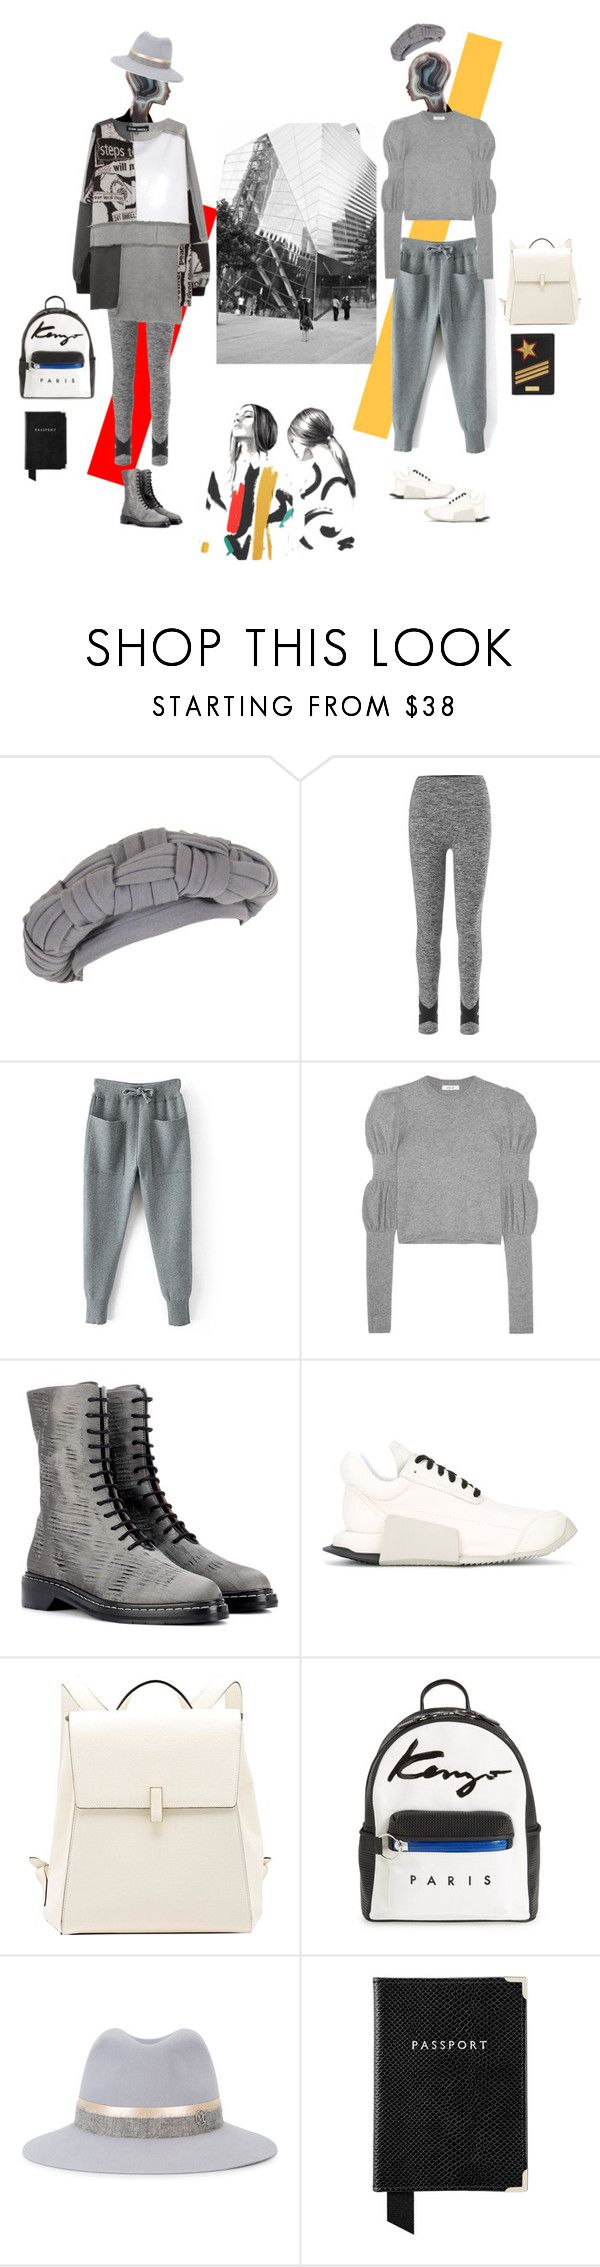 """""""Fly to Oslo"""" by ladyarchitect ❤ liked on Polyvore featuring Christian Dior, Beyond Yoga, Adeam, The Row, adidas, Valextra, Kenzo, Maison Michel, Aspinal of London and Henri Bendel"""